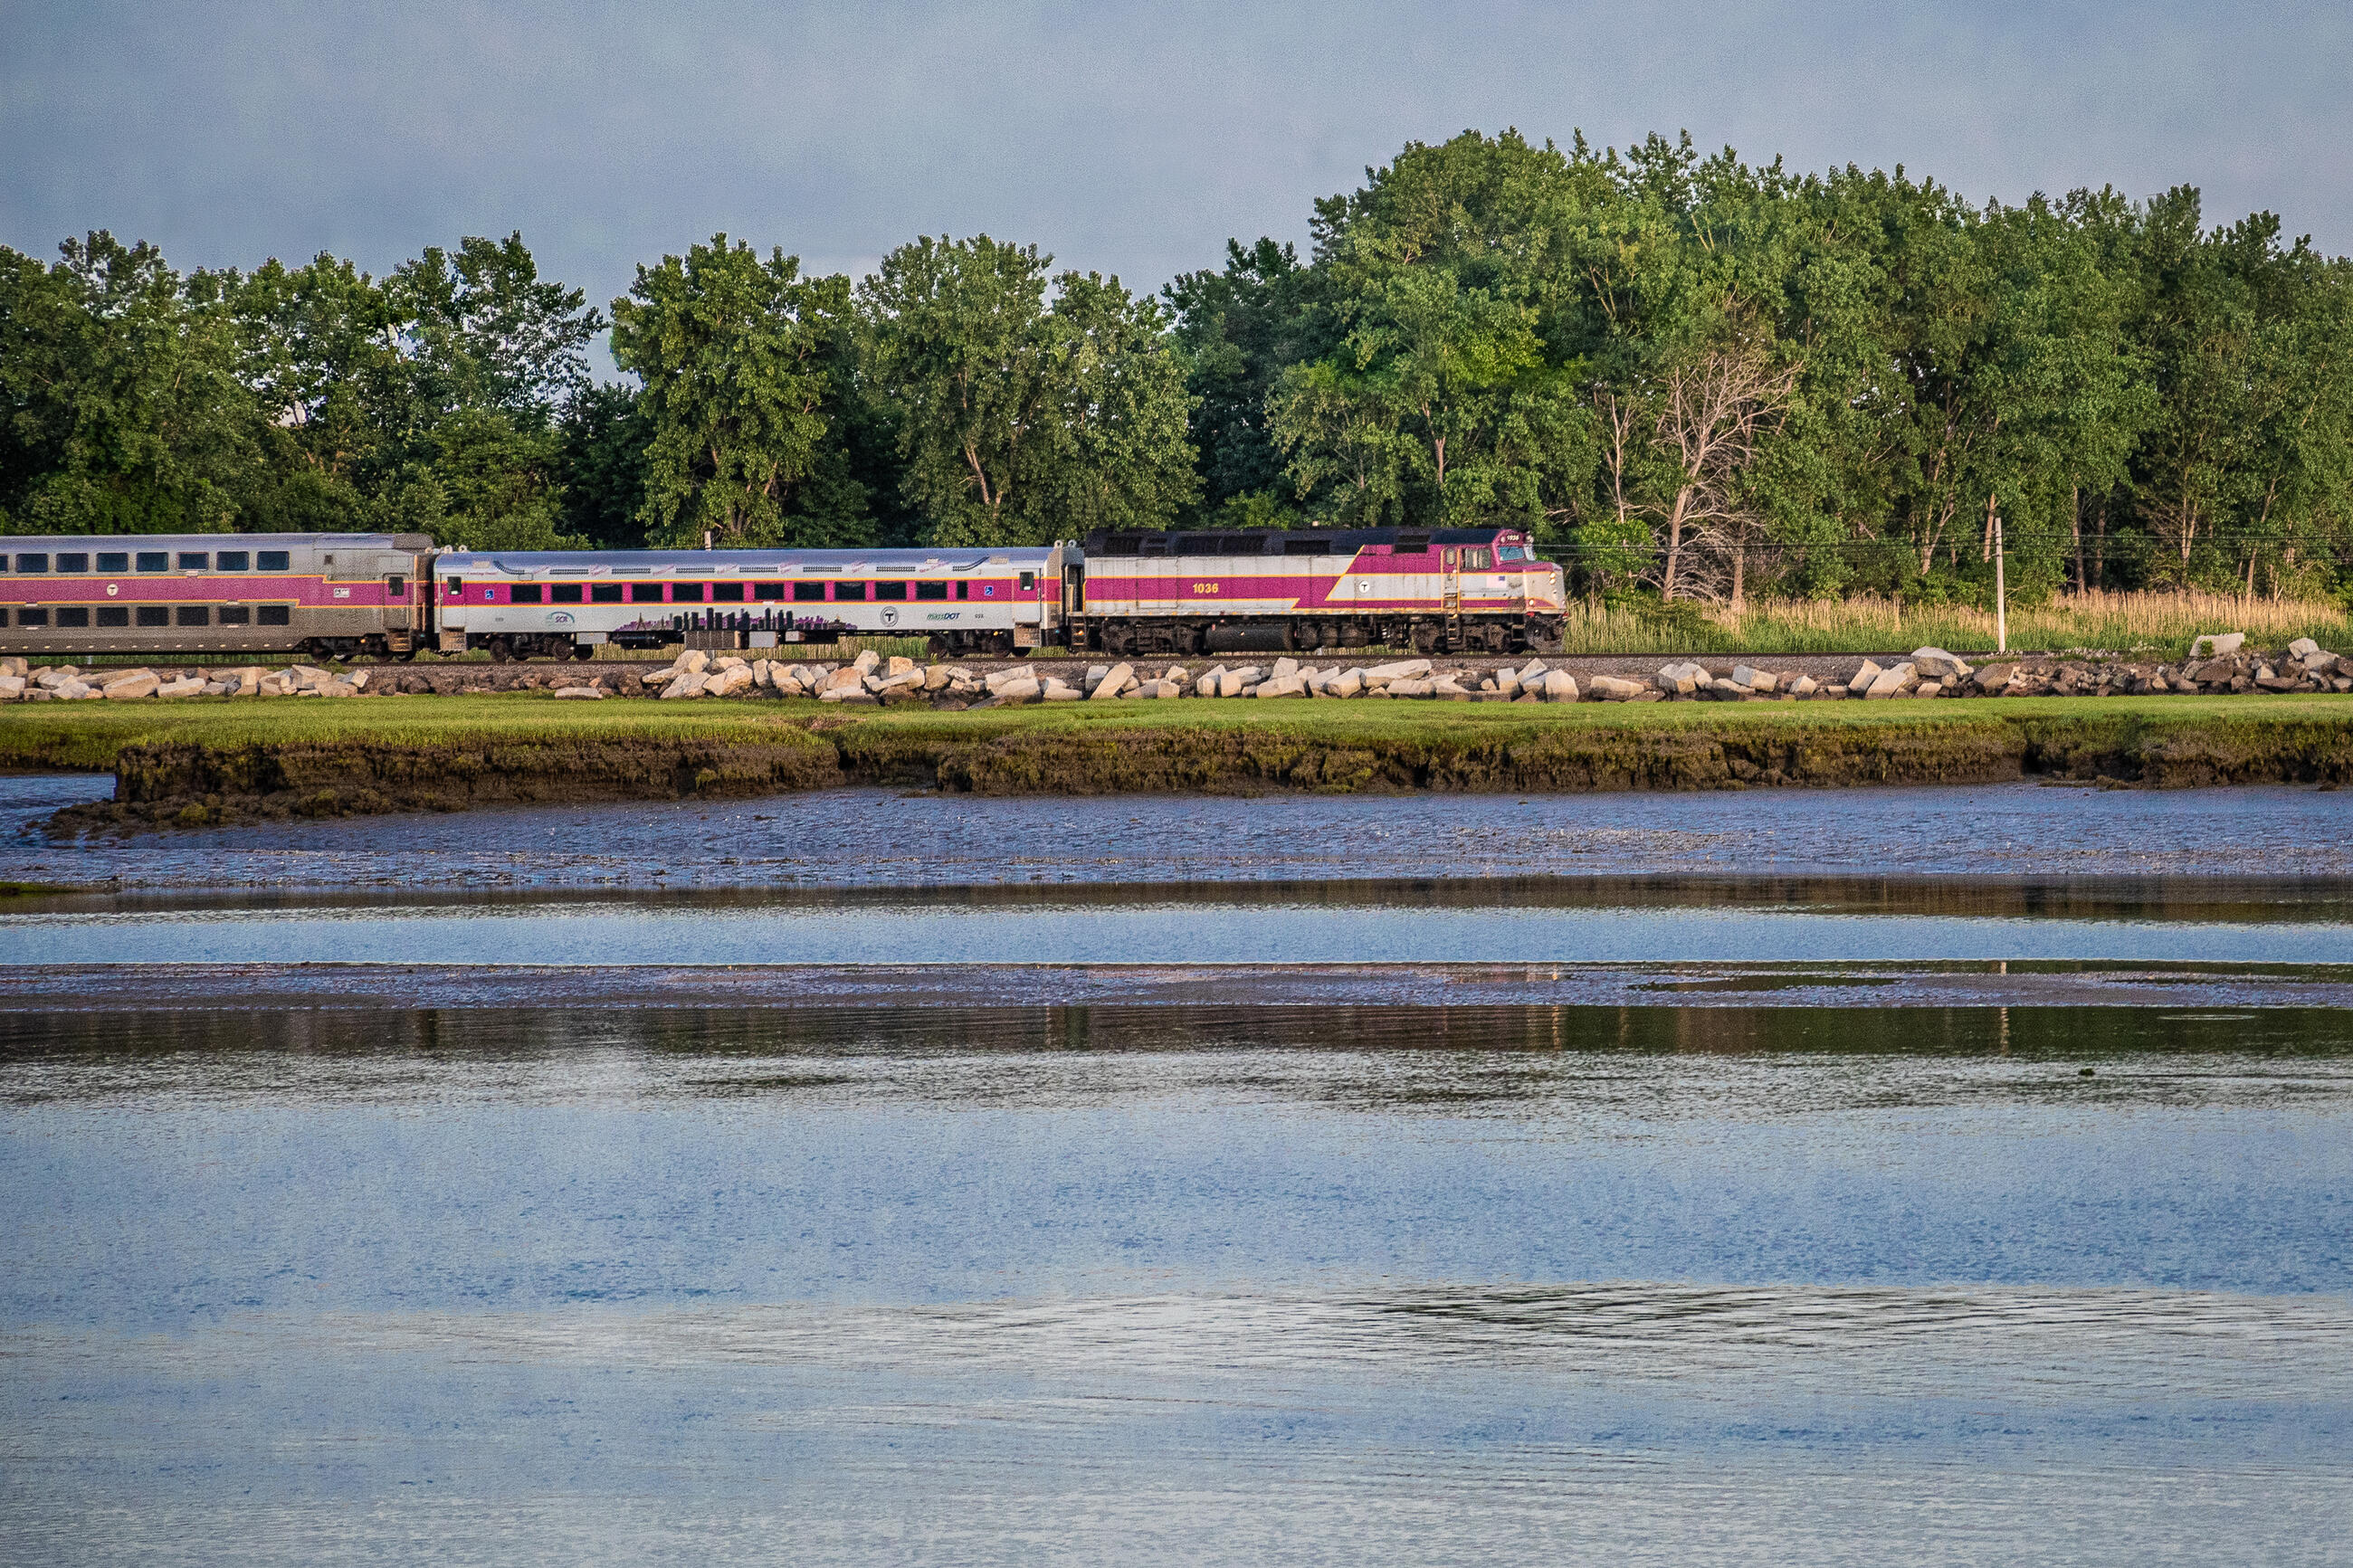 Commuter Rail passing by wetlands and waterways